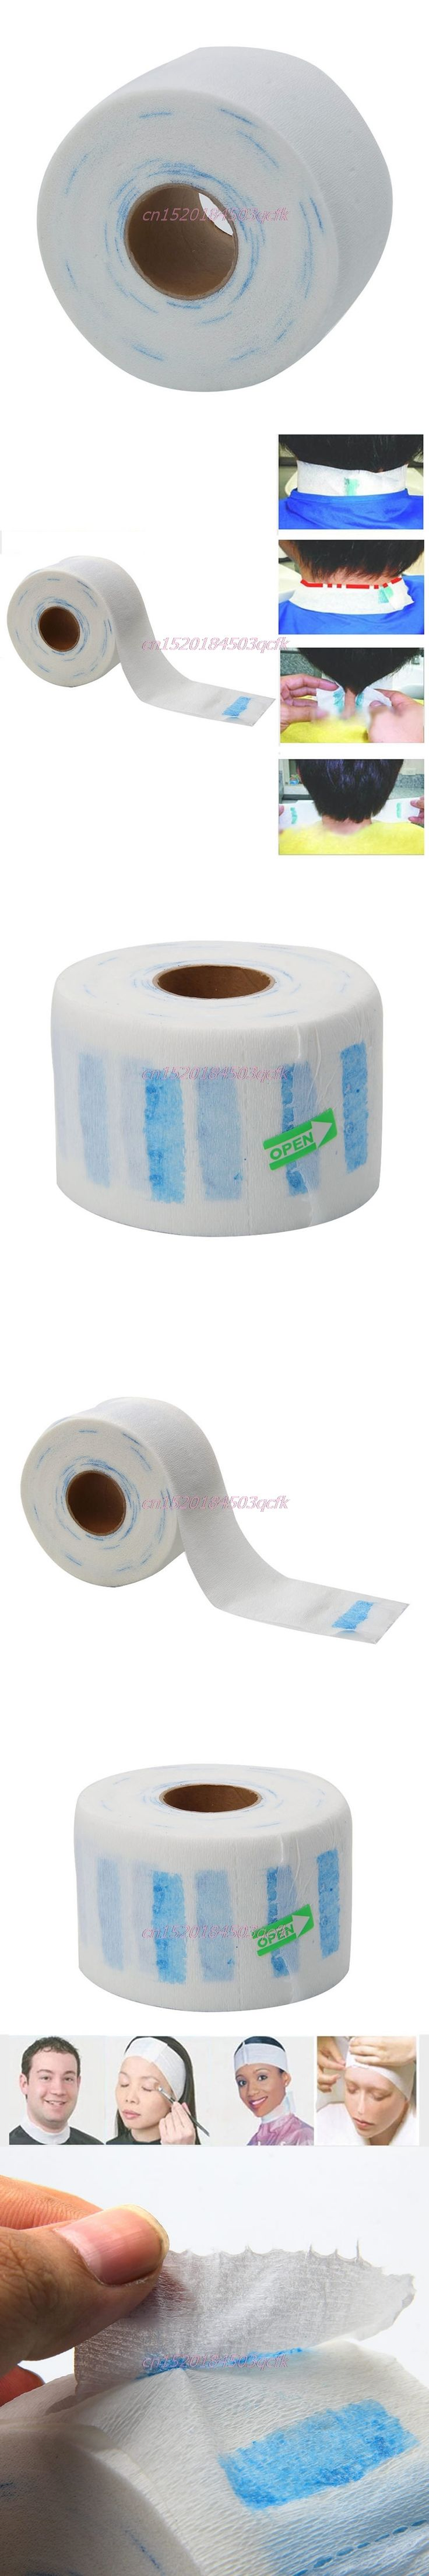 Neck Paper Roll for Barber Barber Salon Tools Professional Stretchy Disposable